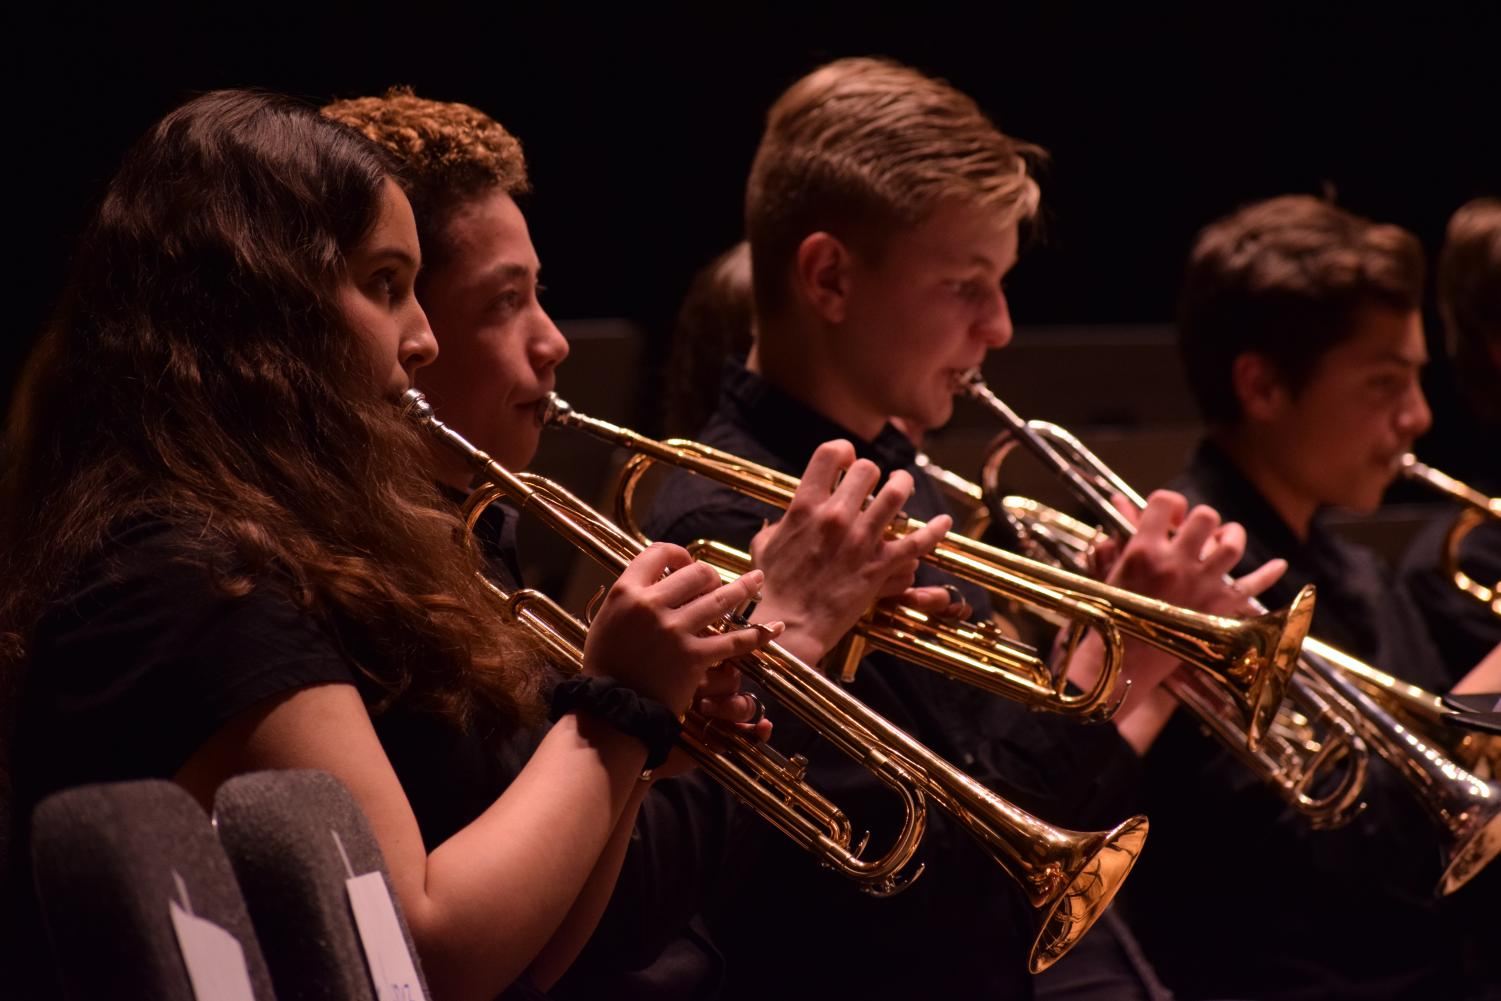 BAND-ING TOGETHER. Freshmen Amelia Scharma, Will Trone and Benjamin Stankiewicz play their trumpets at the seventh through 12th grade band concert at Mandel Hall April 23. Their performance included pieces such as